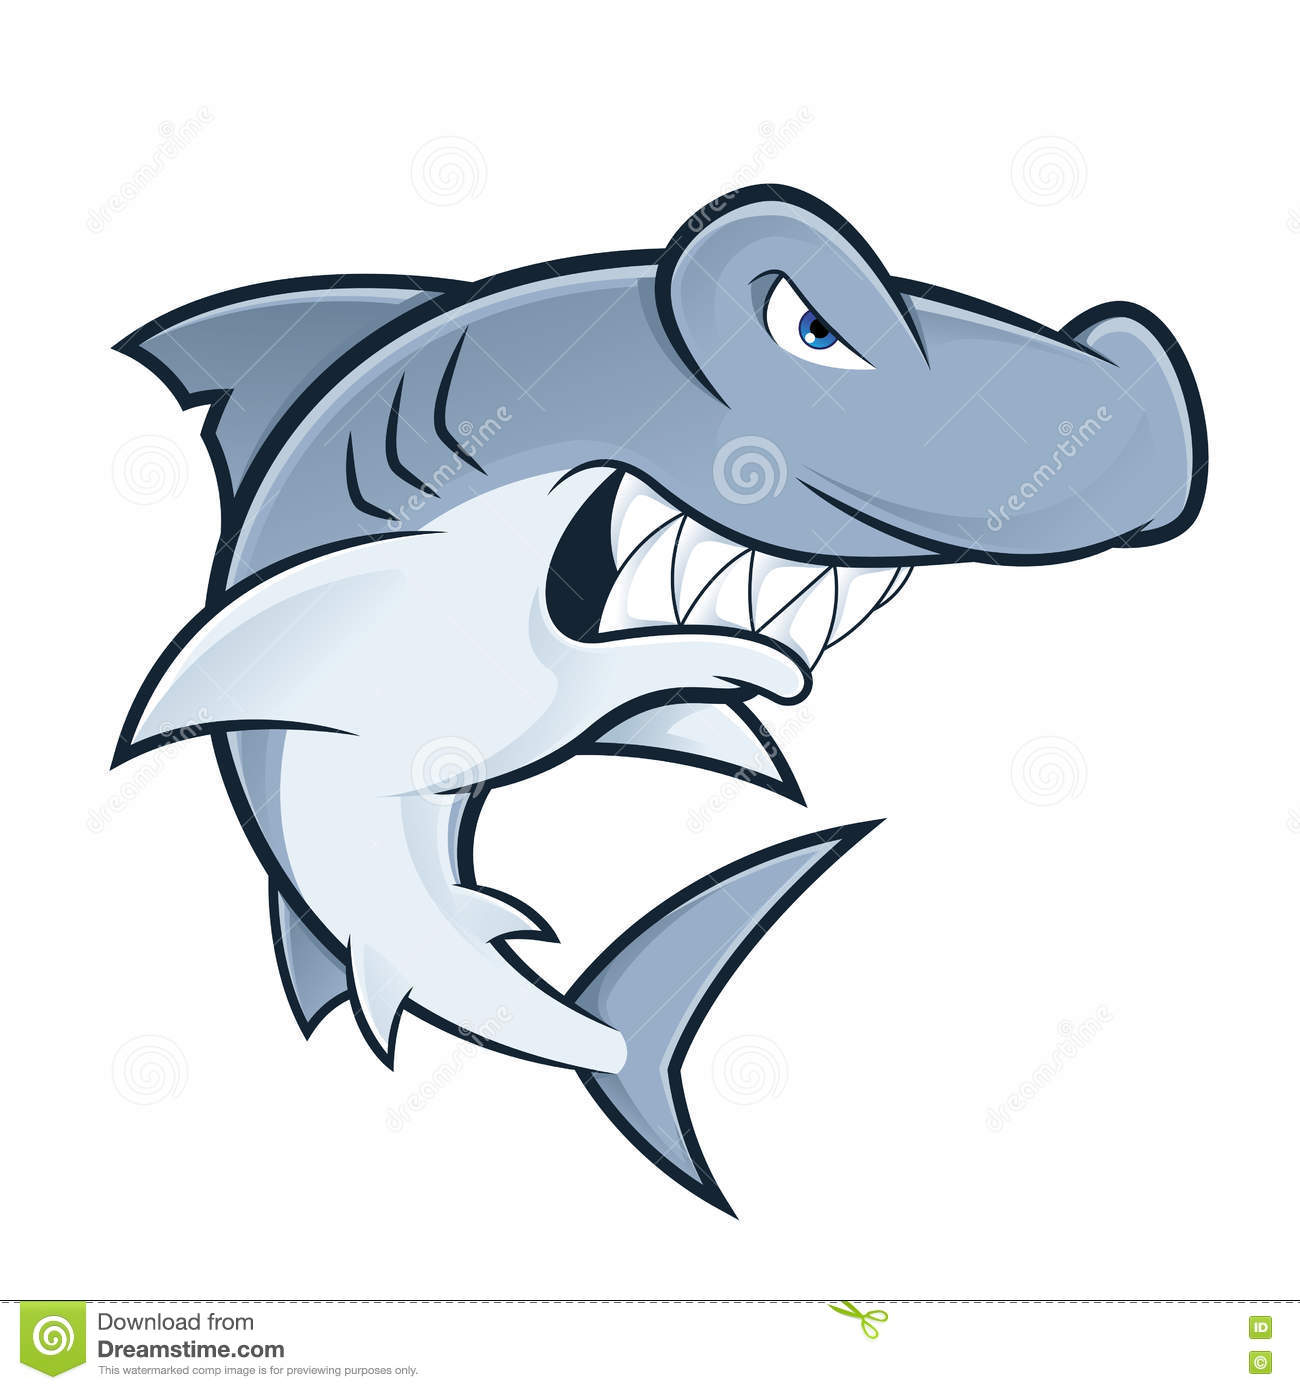 hight resolution of clipart picture of a hammerhead shark cartoon mascot character